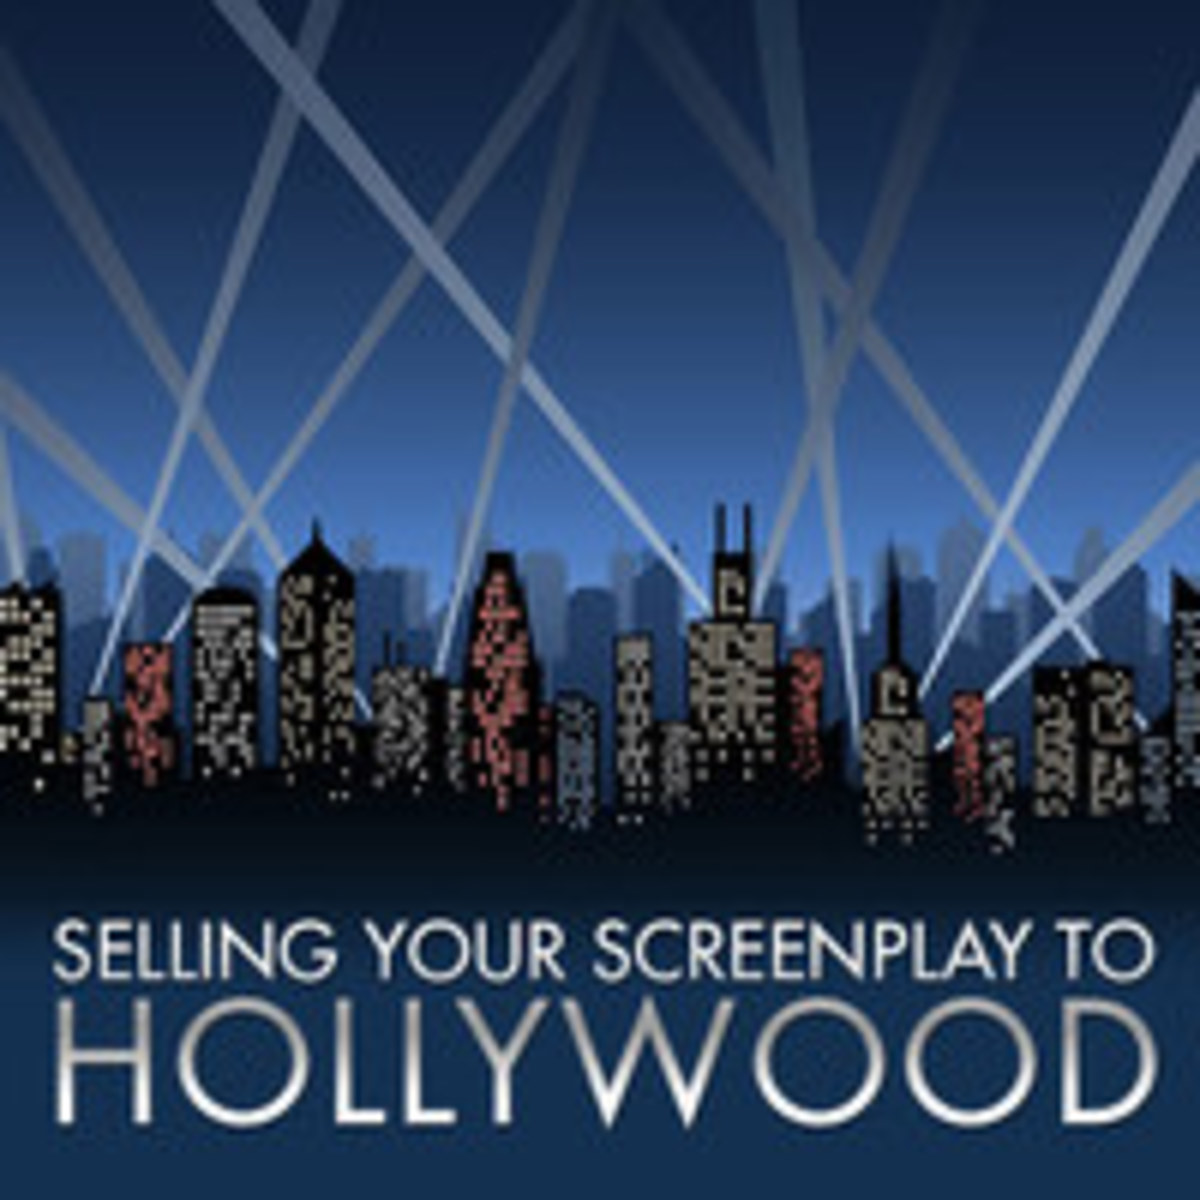 Selling Your Screenplay to Hollywood